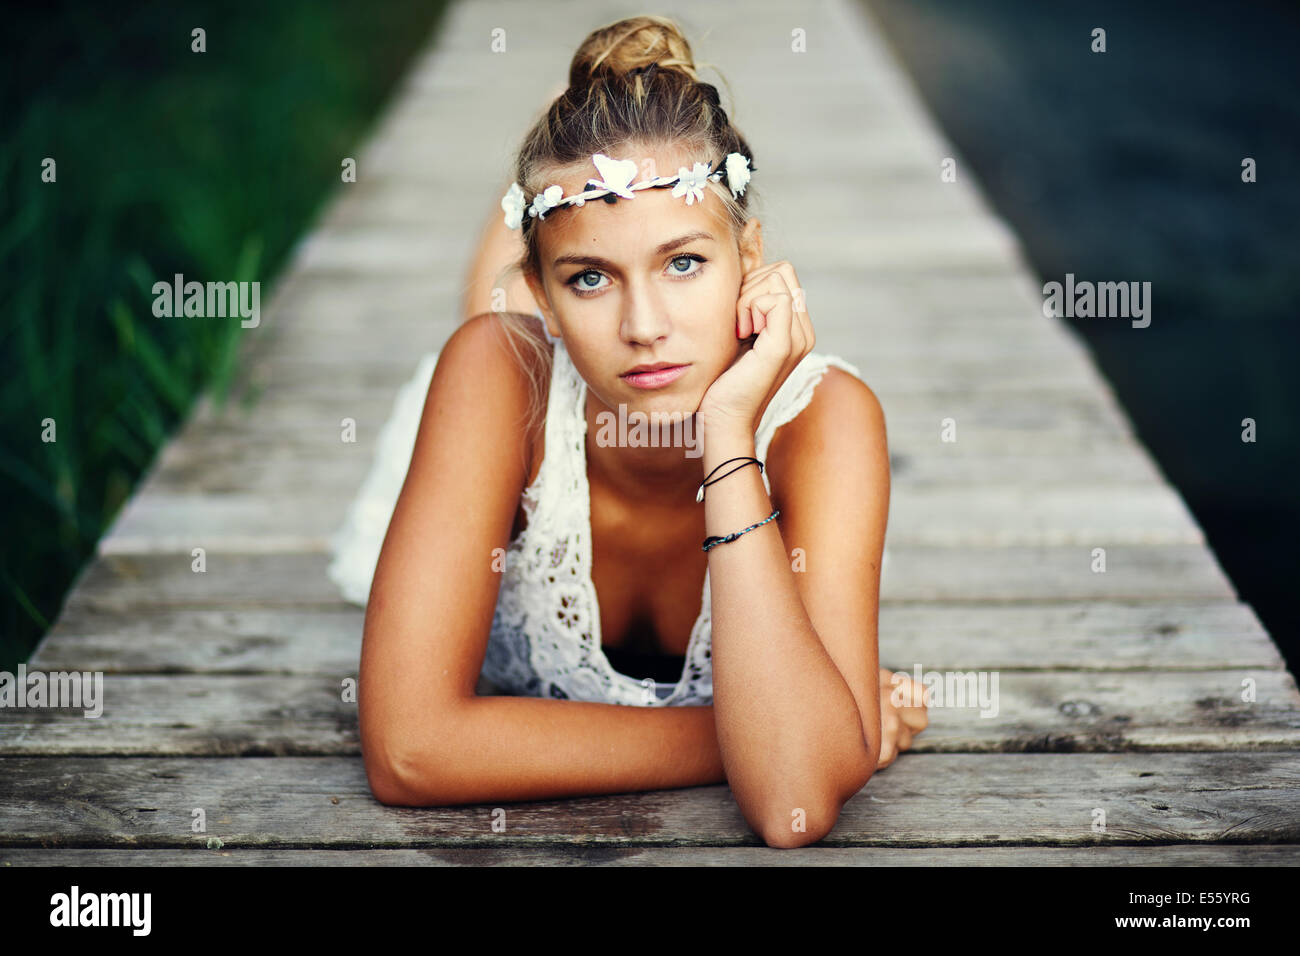 Young woman in white dress on a footbridge - Stock Image